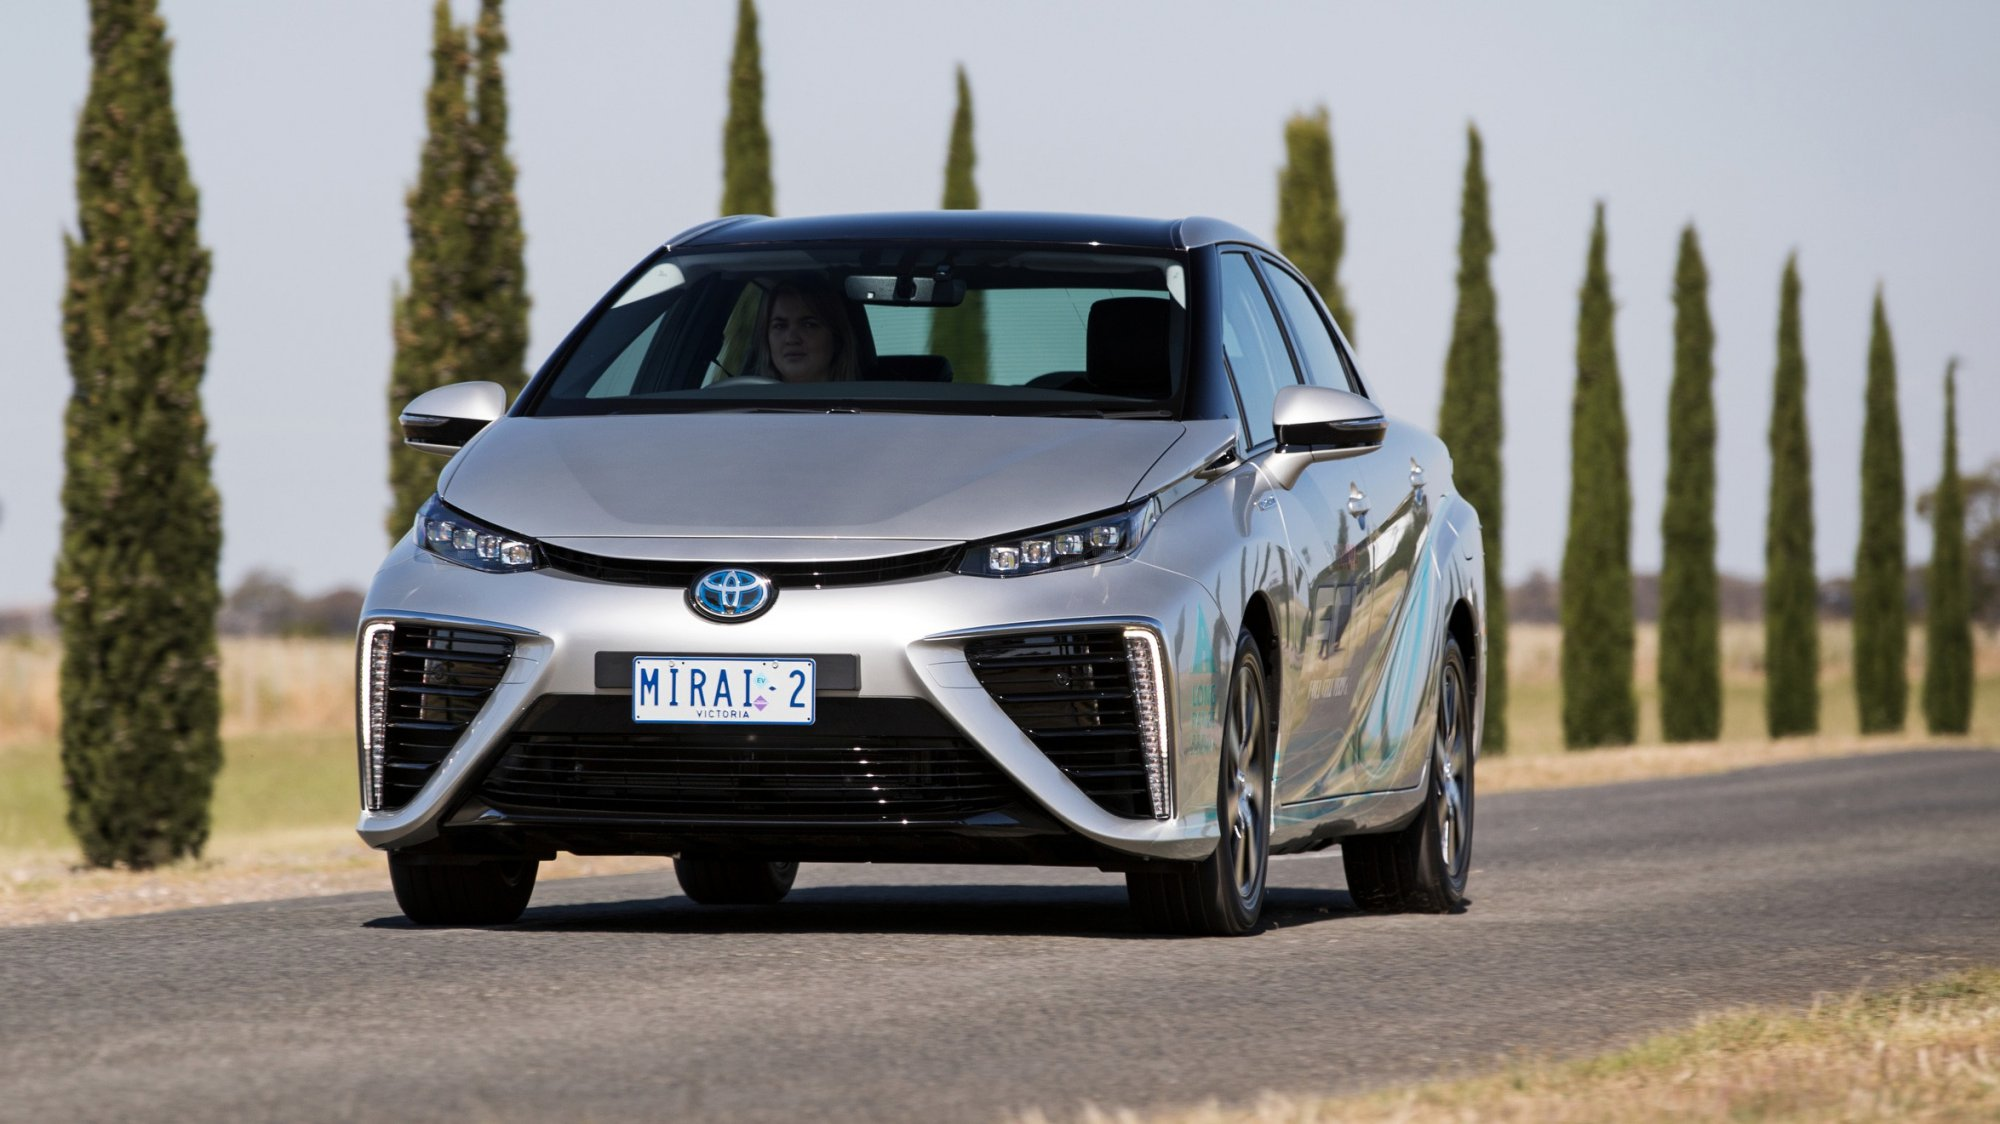 News - Toyota's 2022 EV Will Use Solid-State Batteries